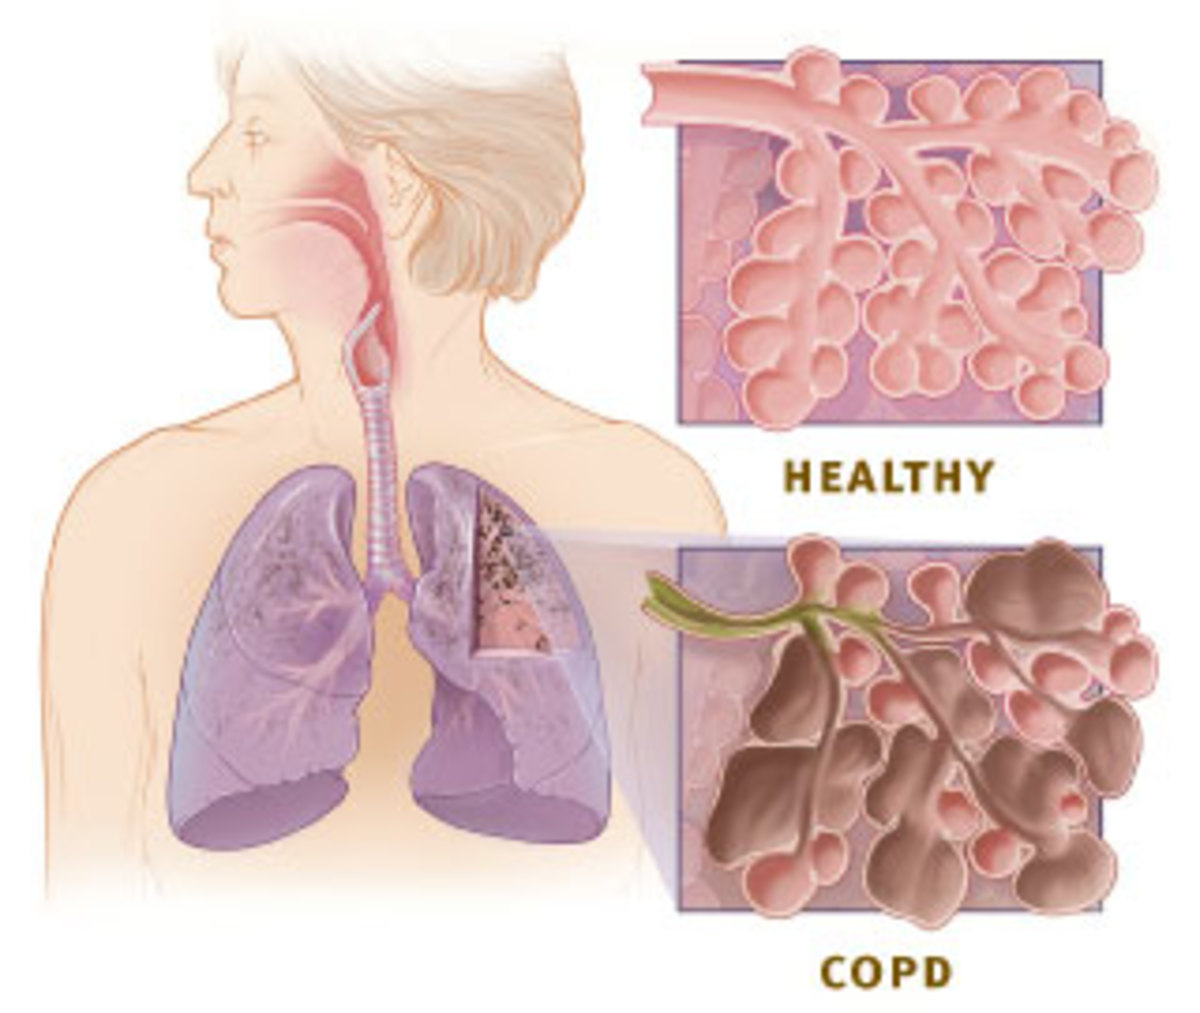 COPD is a common result of smoking cigarettes.